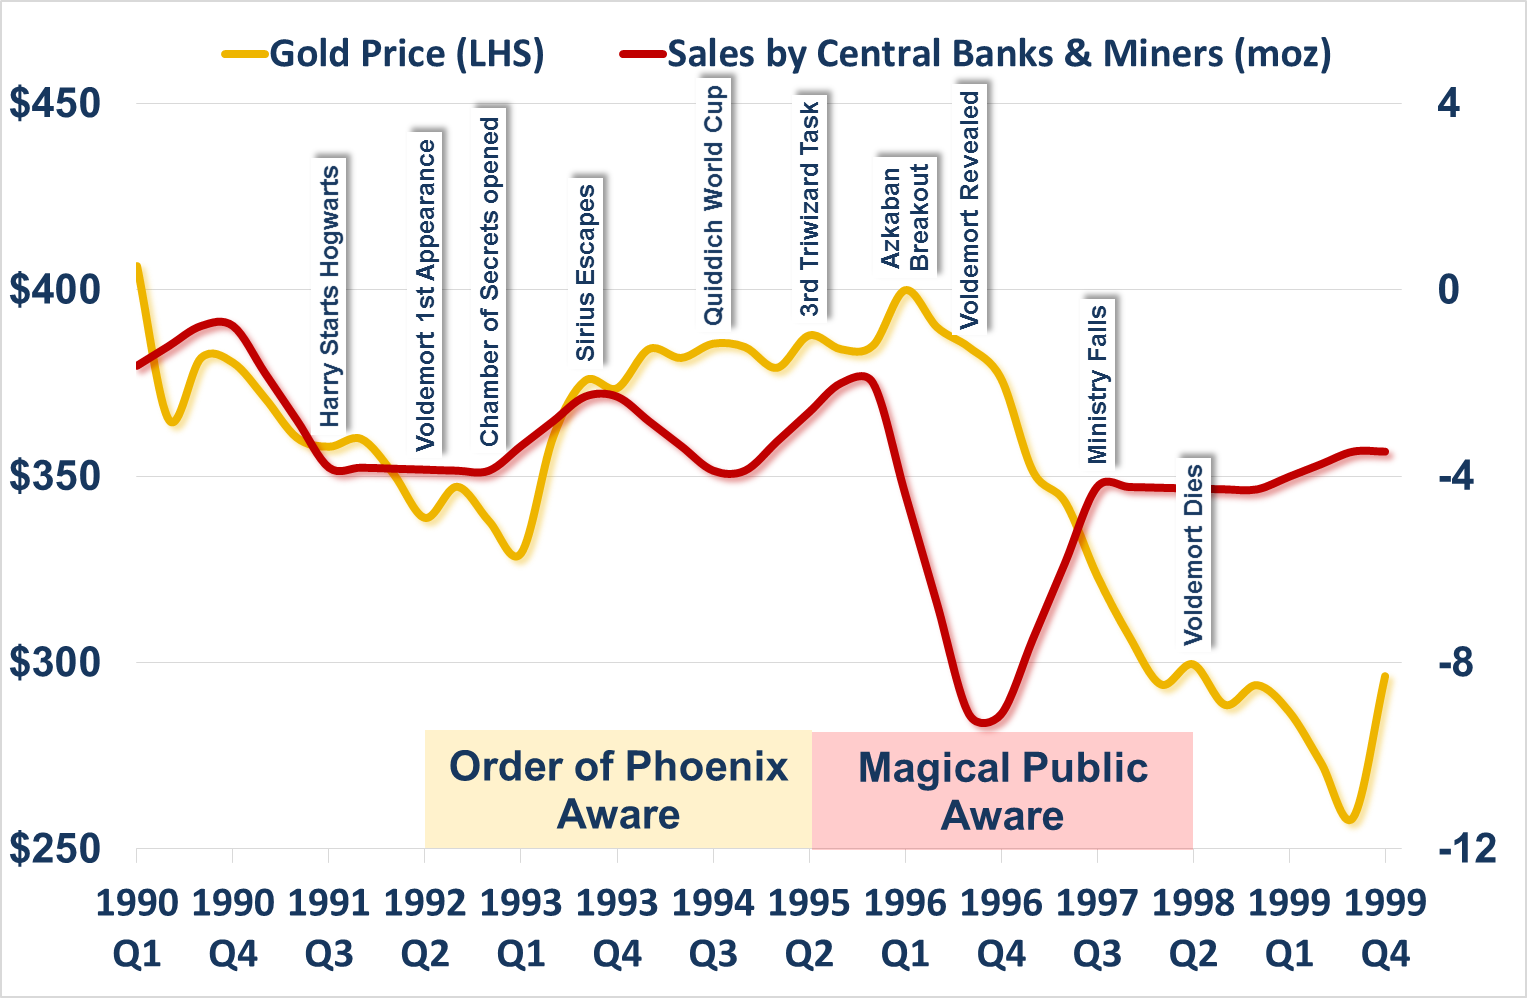 Gold Price and Gold Sales by Central Banks Miners 1990s